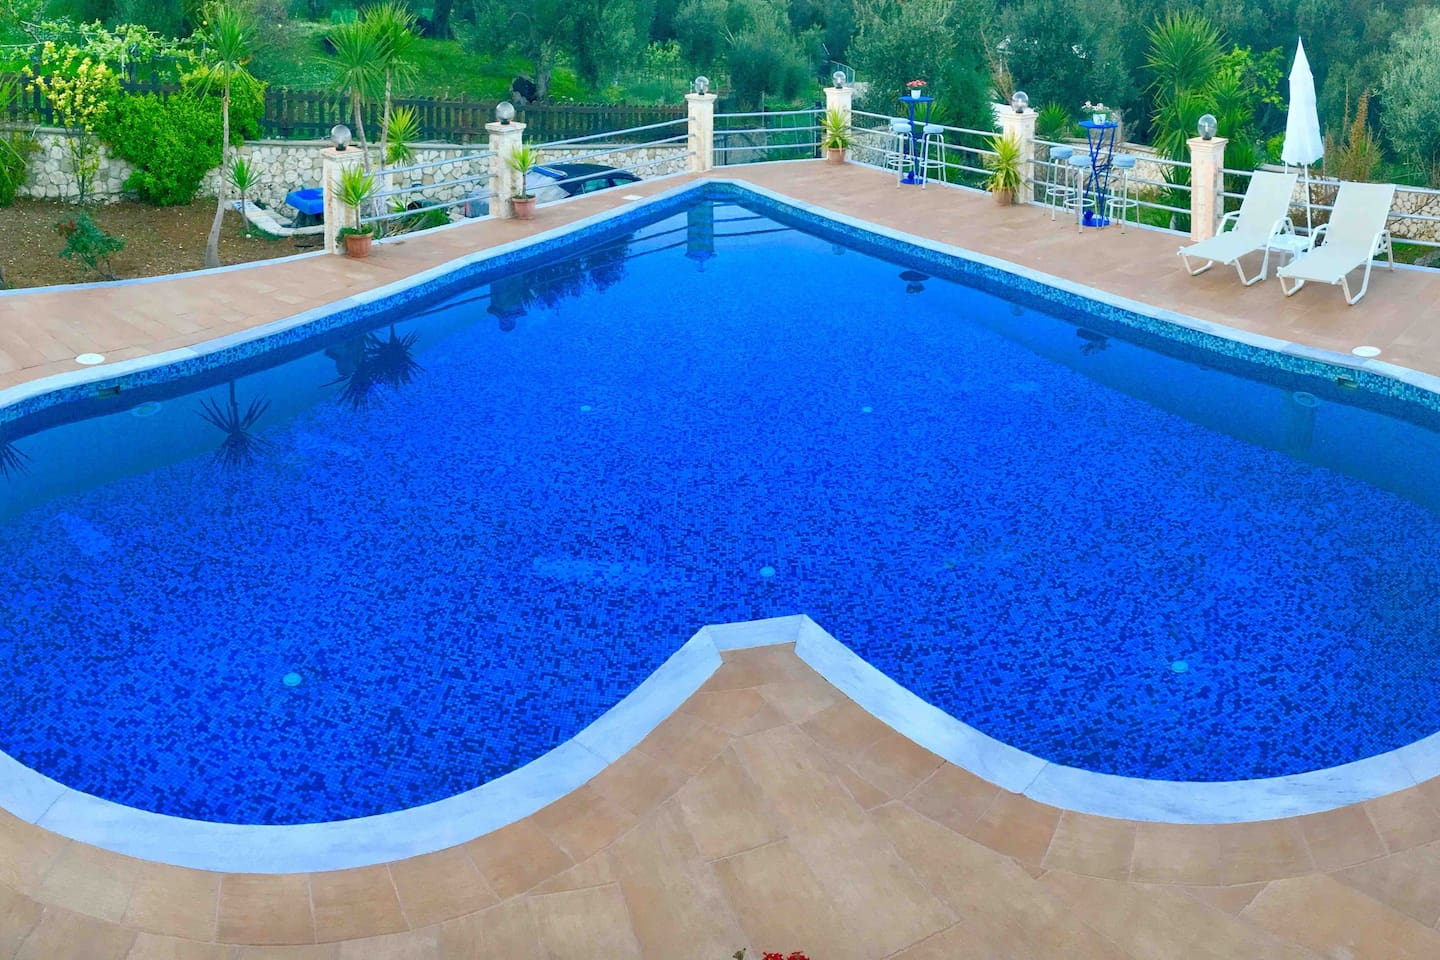 Panoramic view of the pool